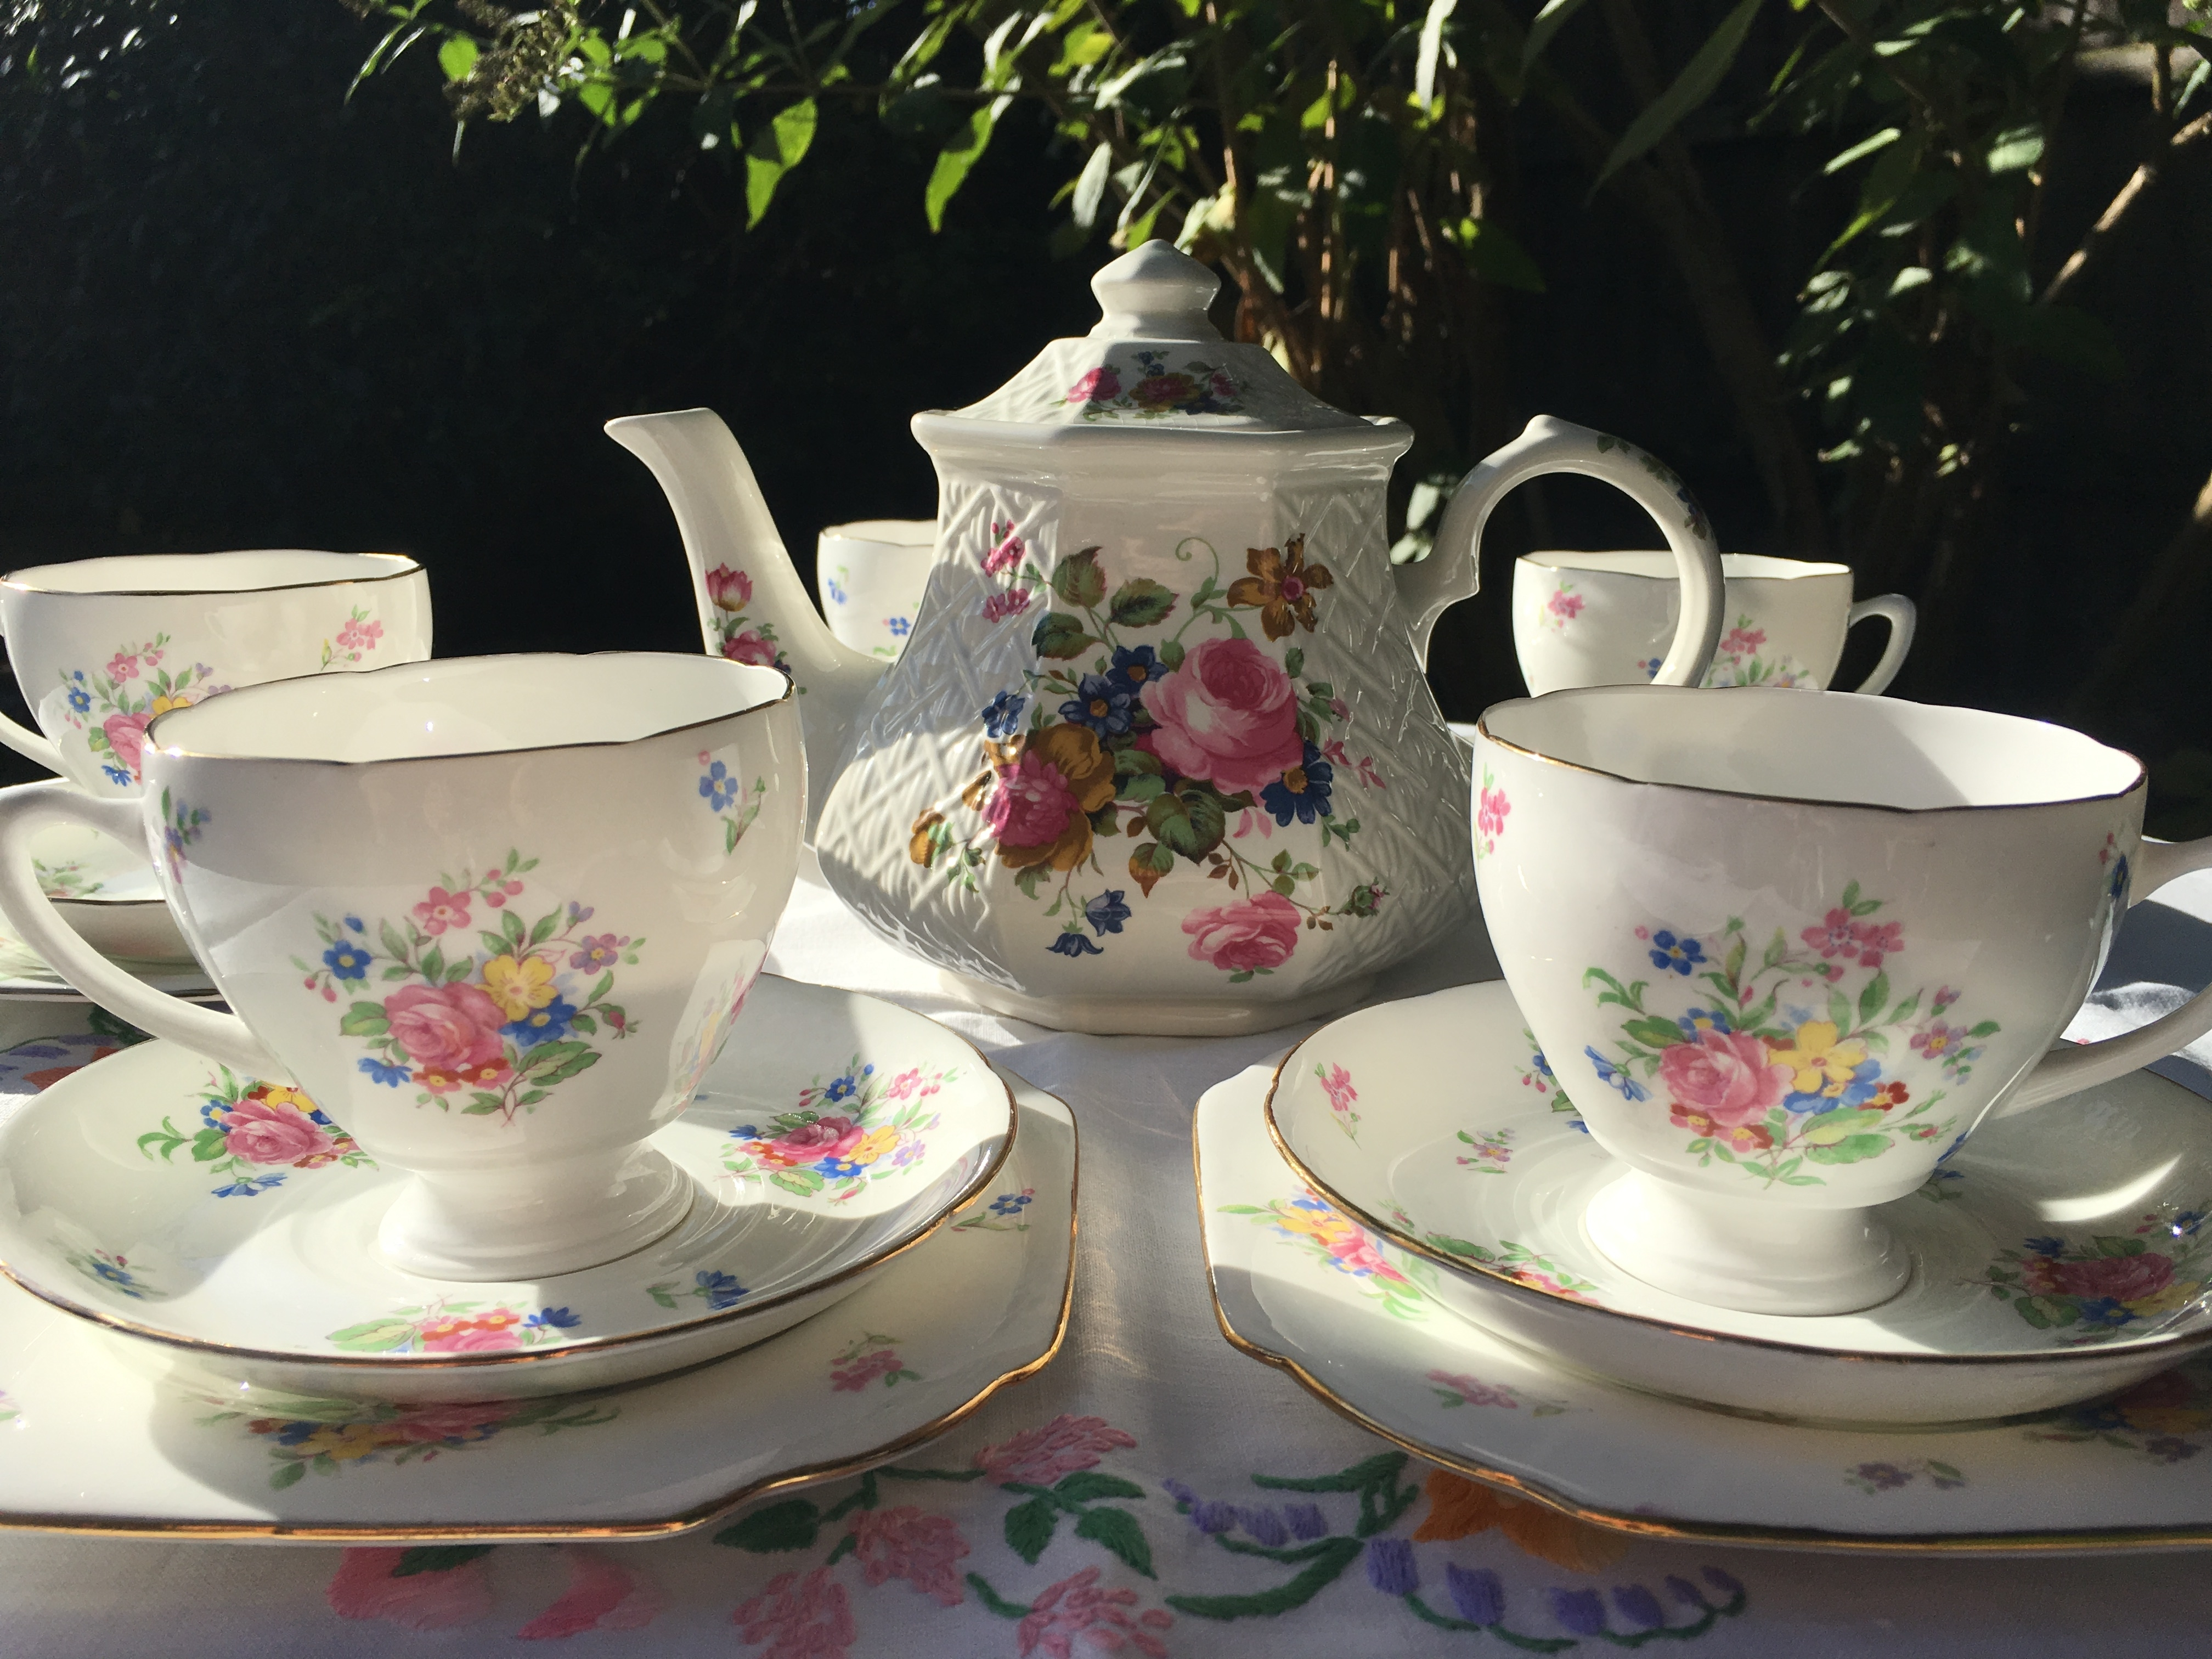 Sadler teapot with pretty vintage teaset